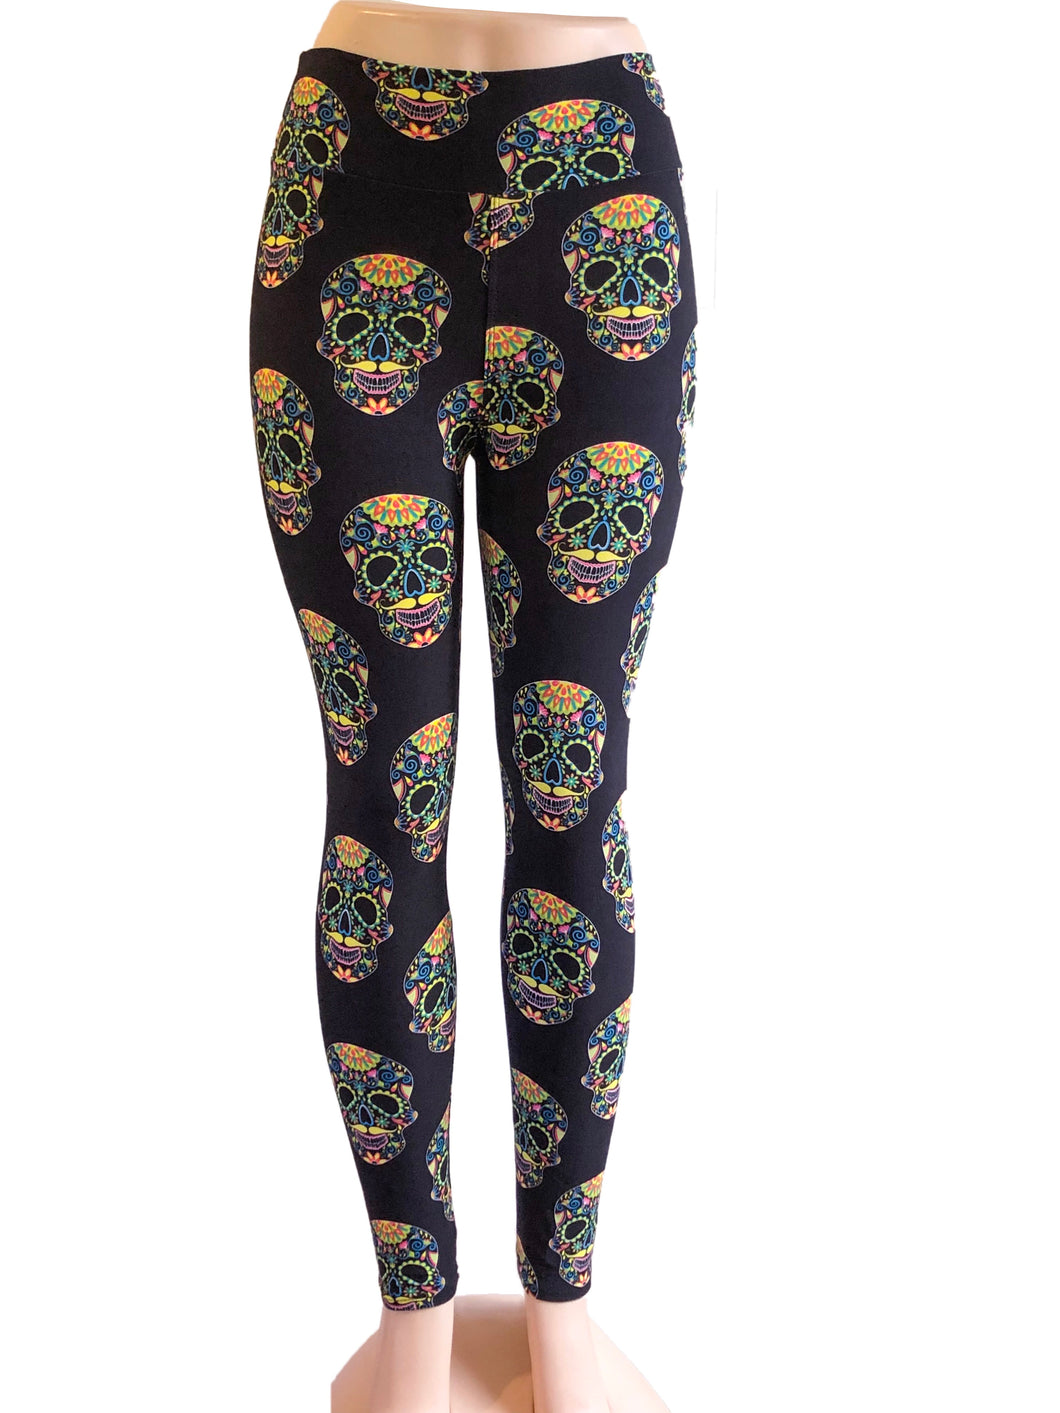 Natopia Psychedelic Skull Leggings Curvy Plus Size Fits 16-22